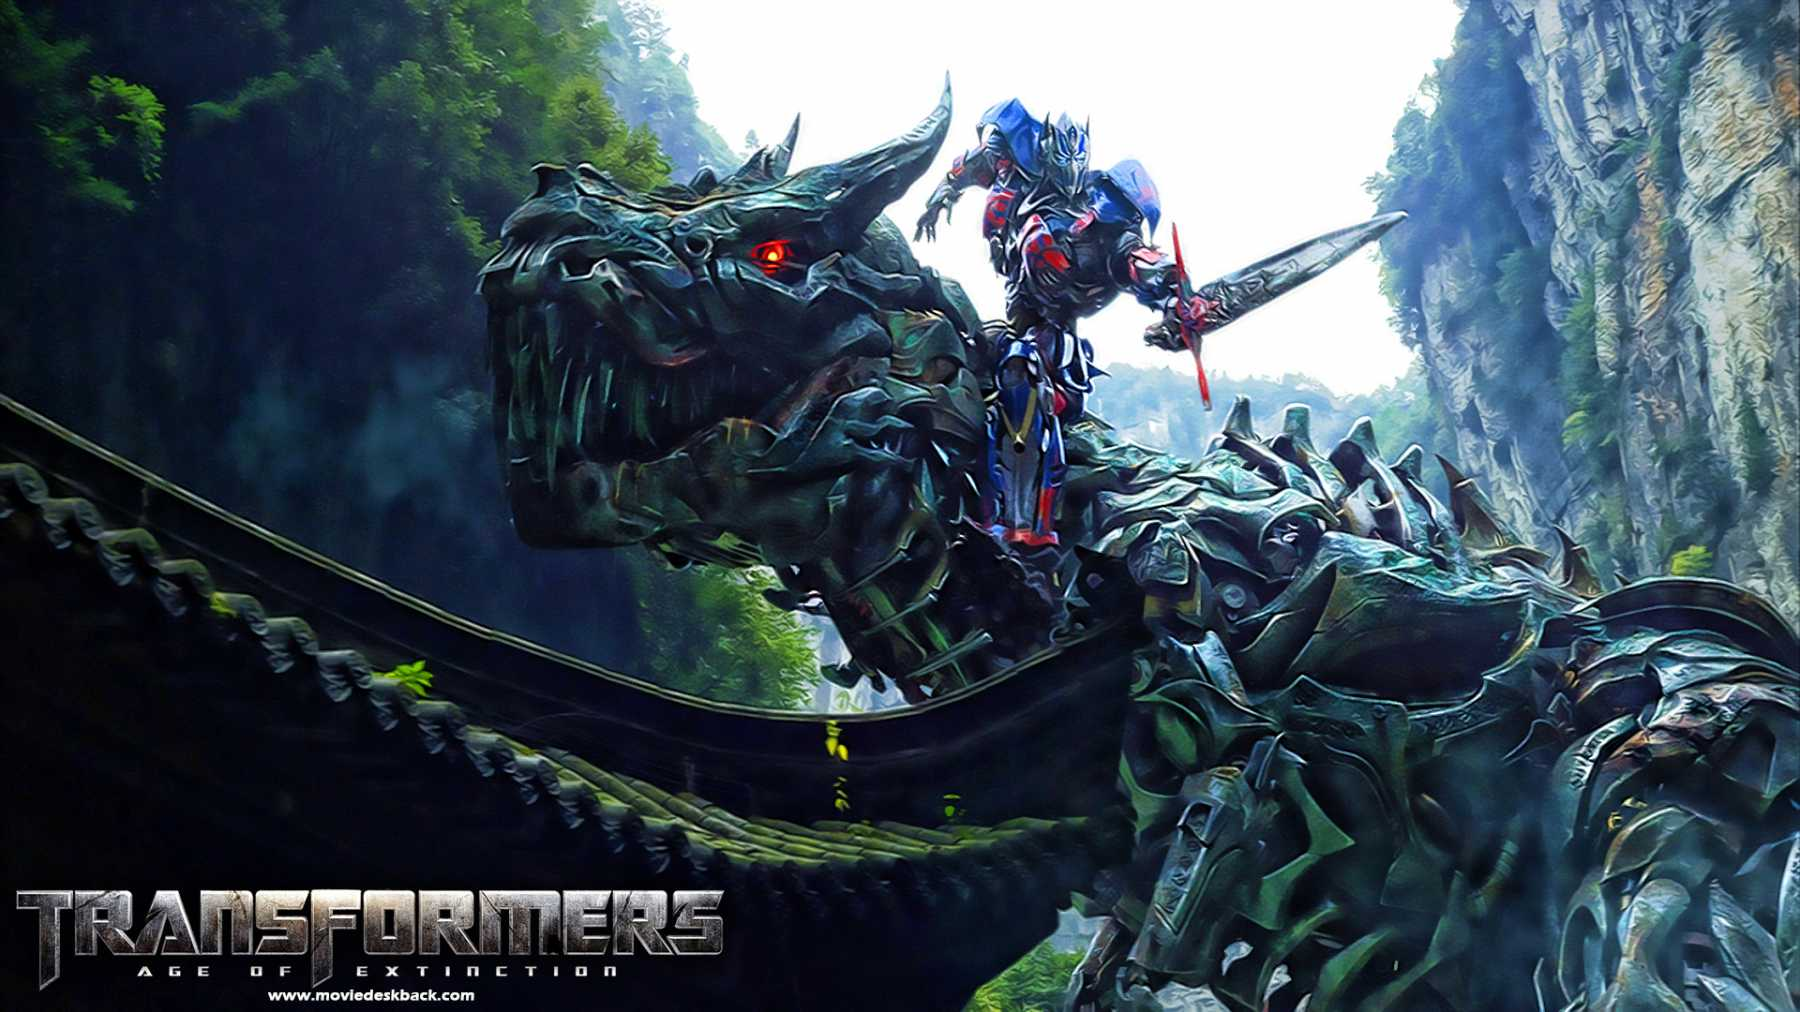 In Theaters: PopWrapped Reviews The Mega-Movie, Transformers: Age of Extinction